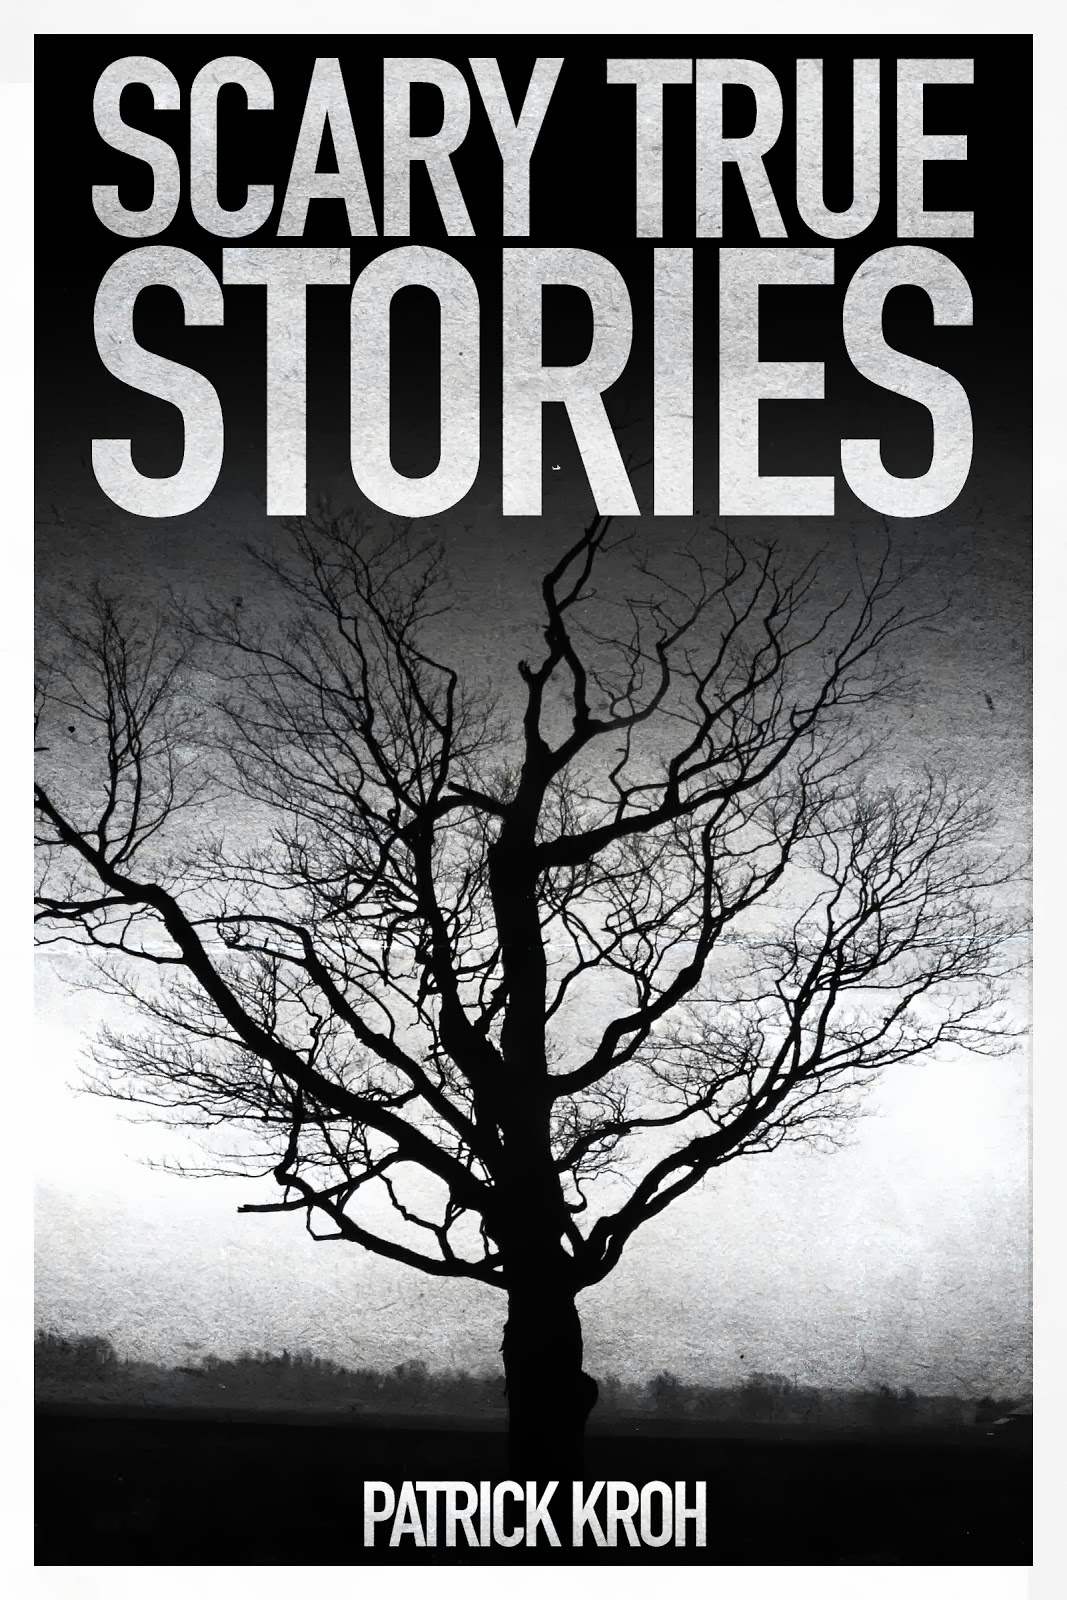 Now you can read the book! Get SCARY TRUE STORIES!